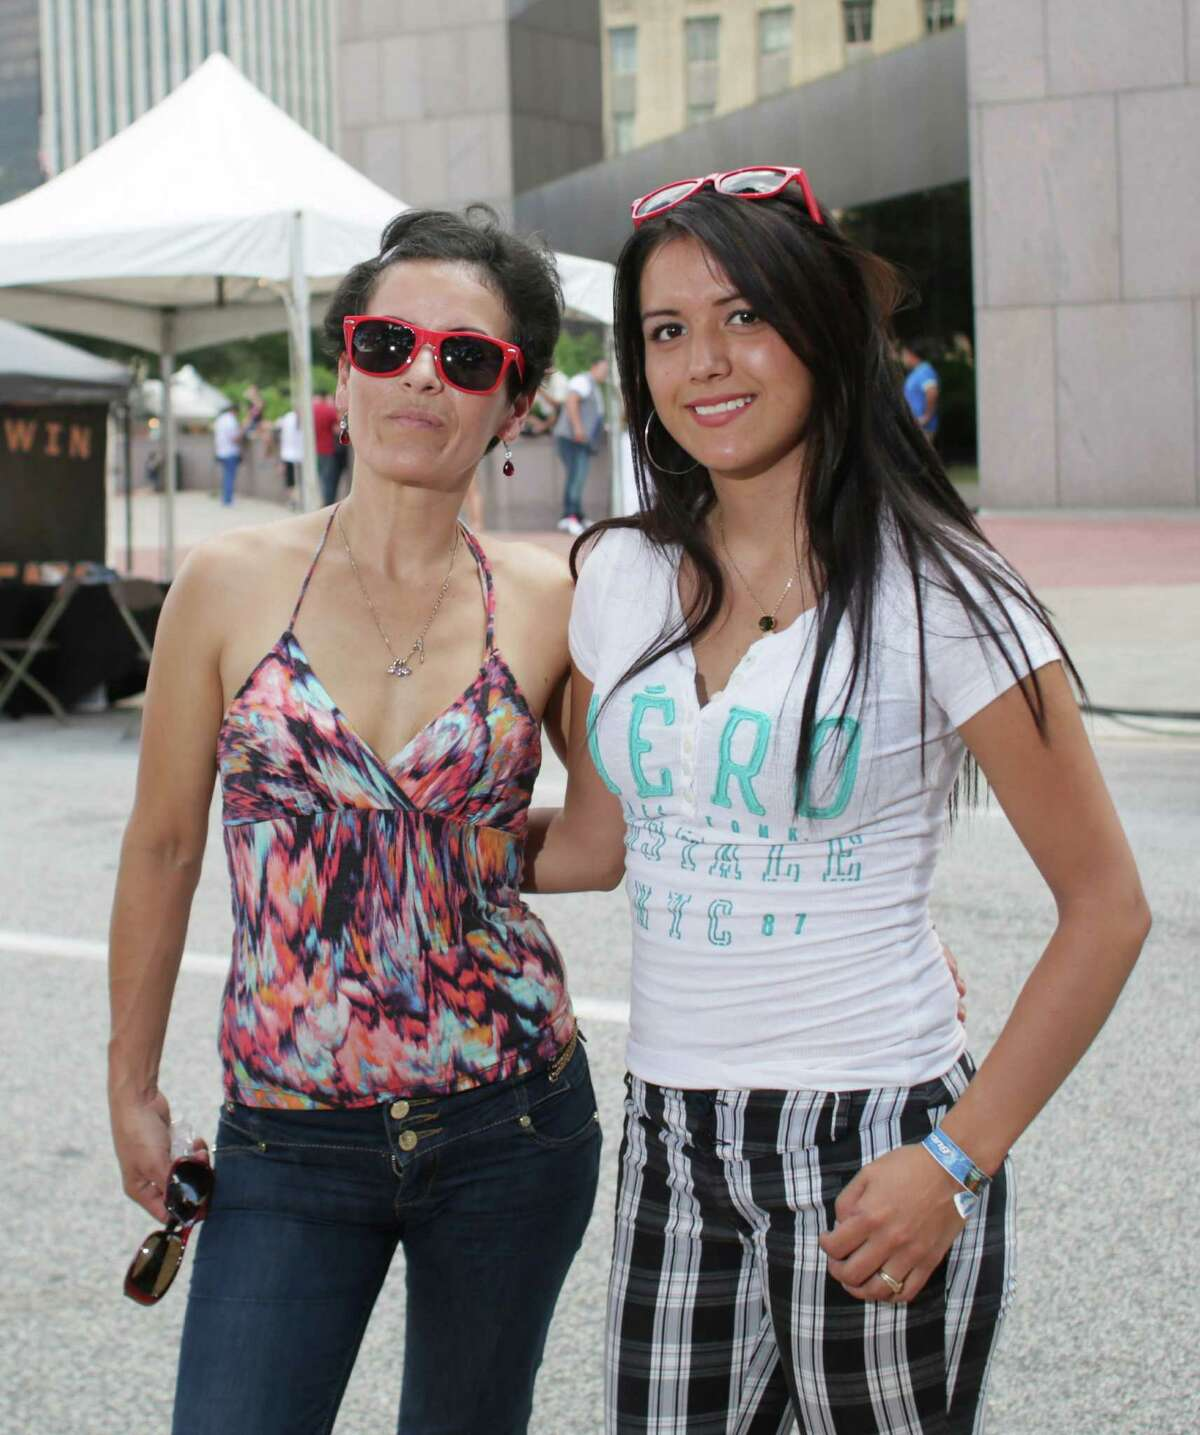 Fans pose for a photo at the annual Puerto Rican and Cuban Festival, Sunday, September 20, in Houston, Texas.